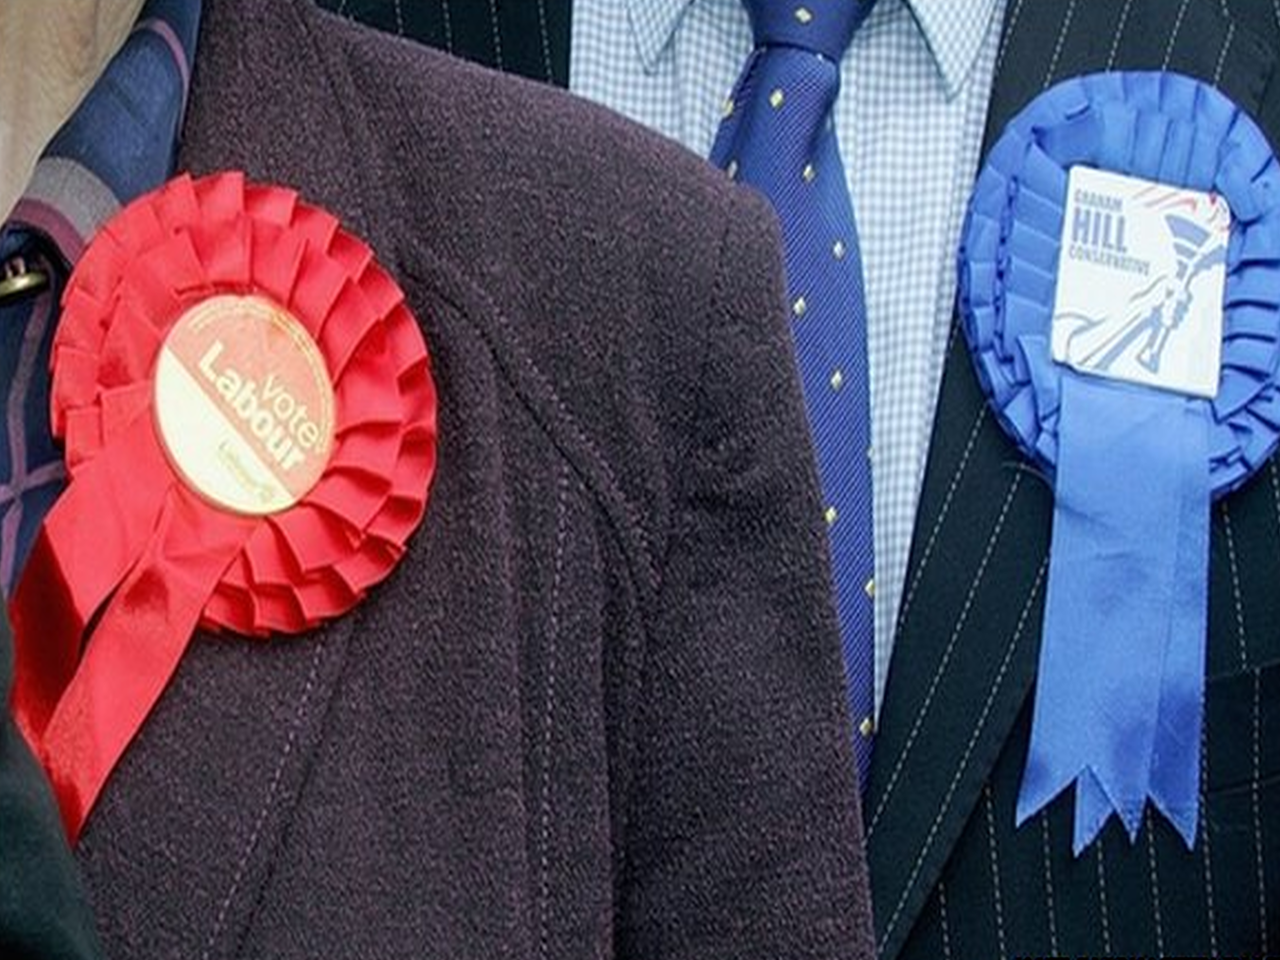 Tories and Labour Consider 'LabCon' Coalition to Keep UKIP Out